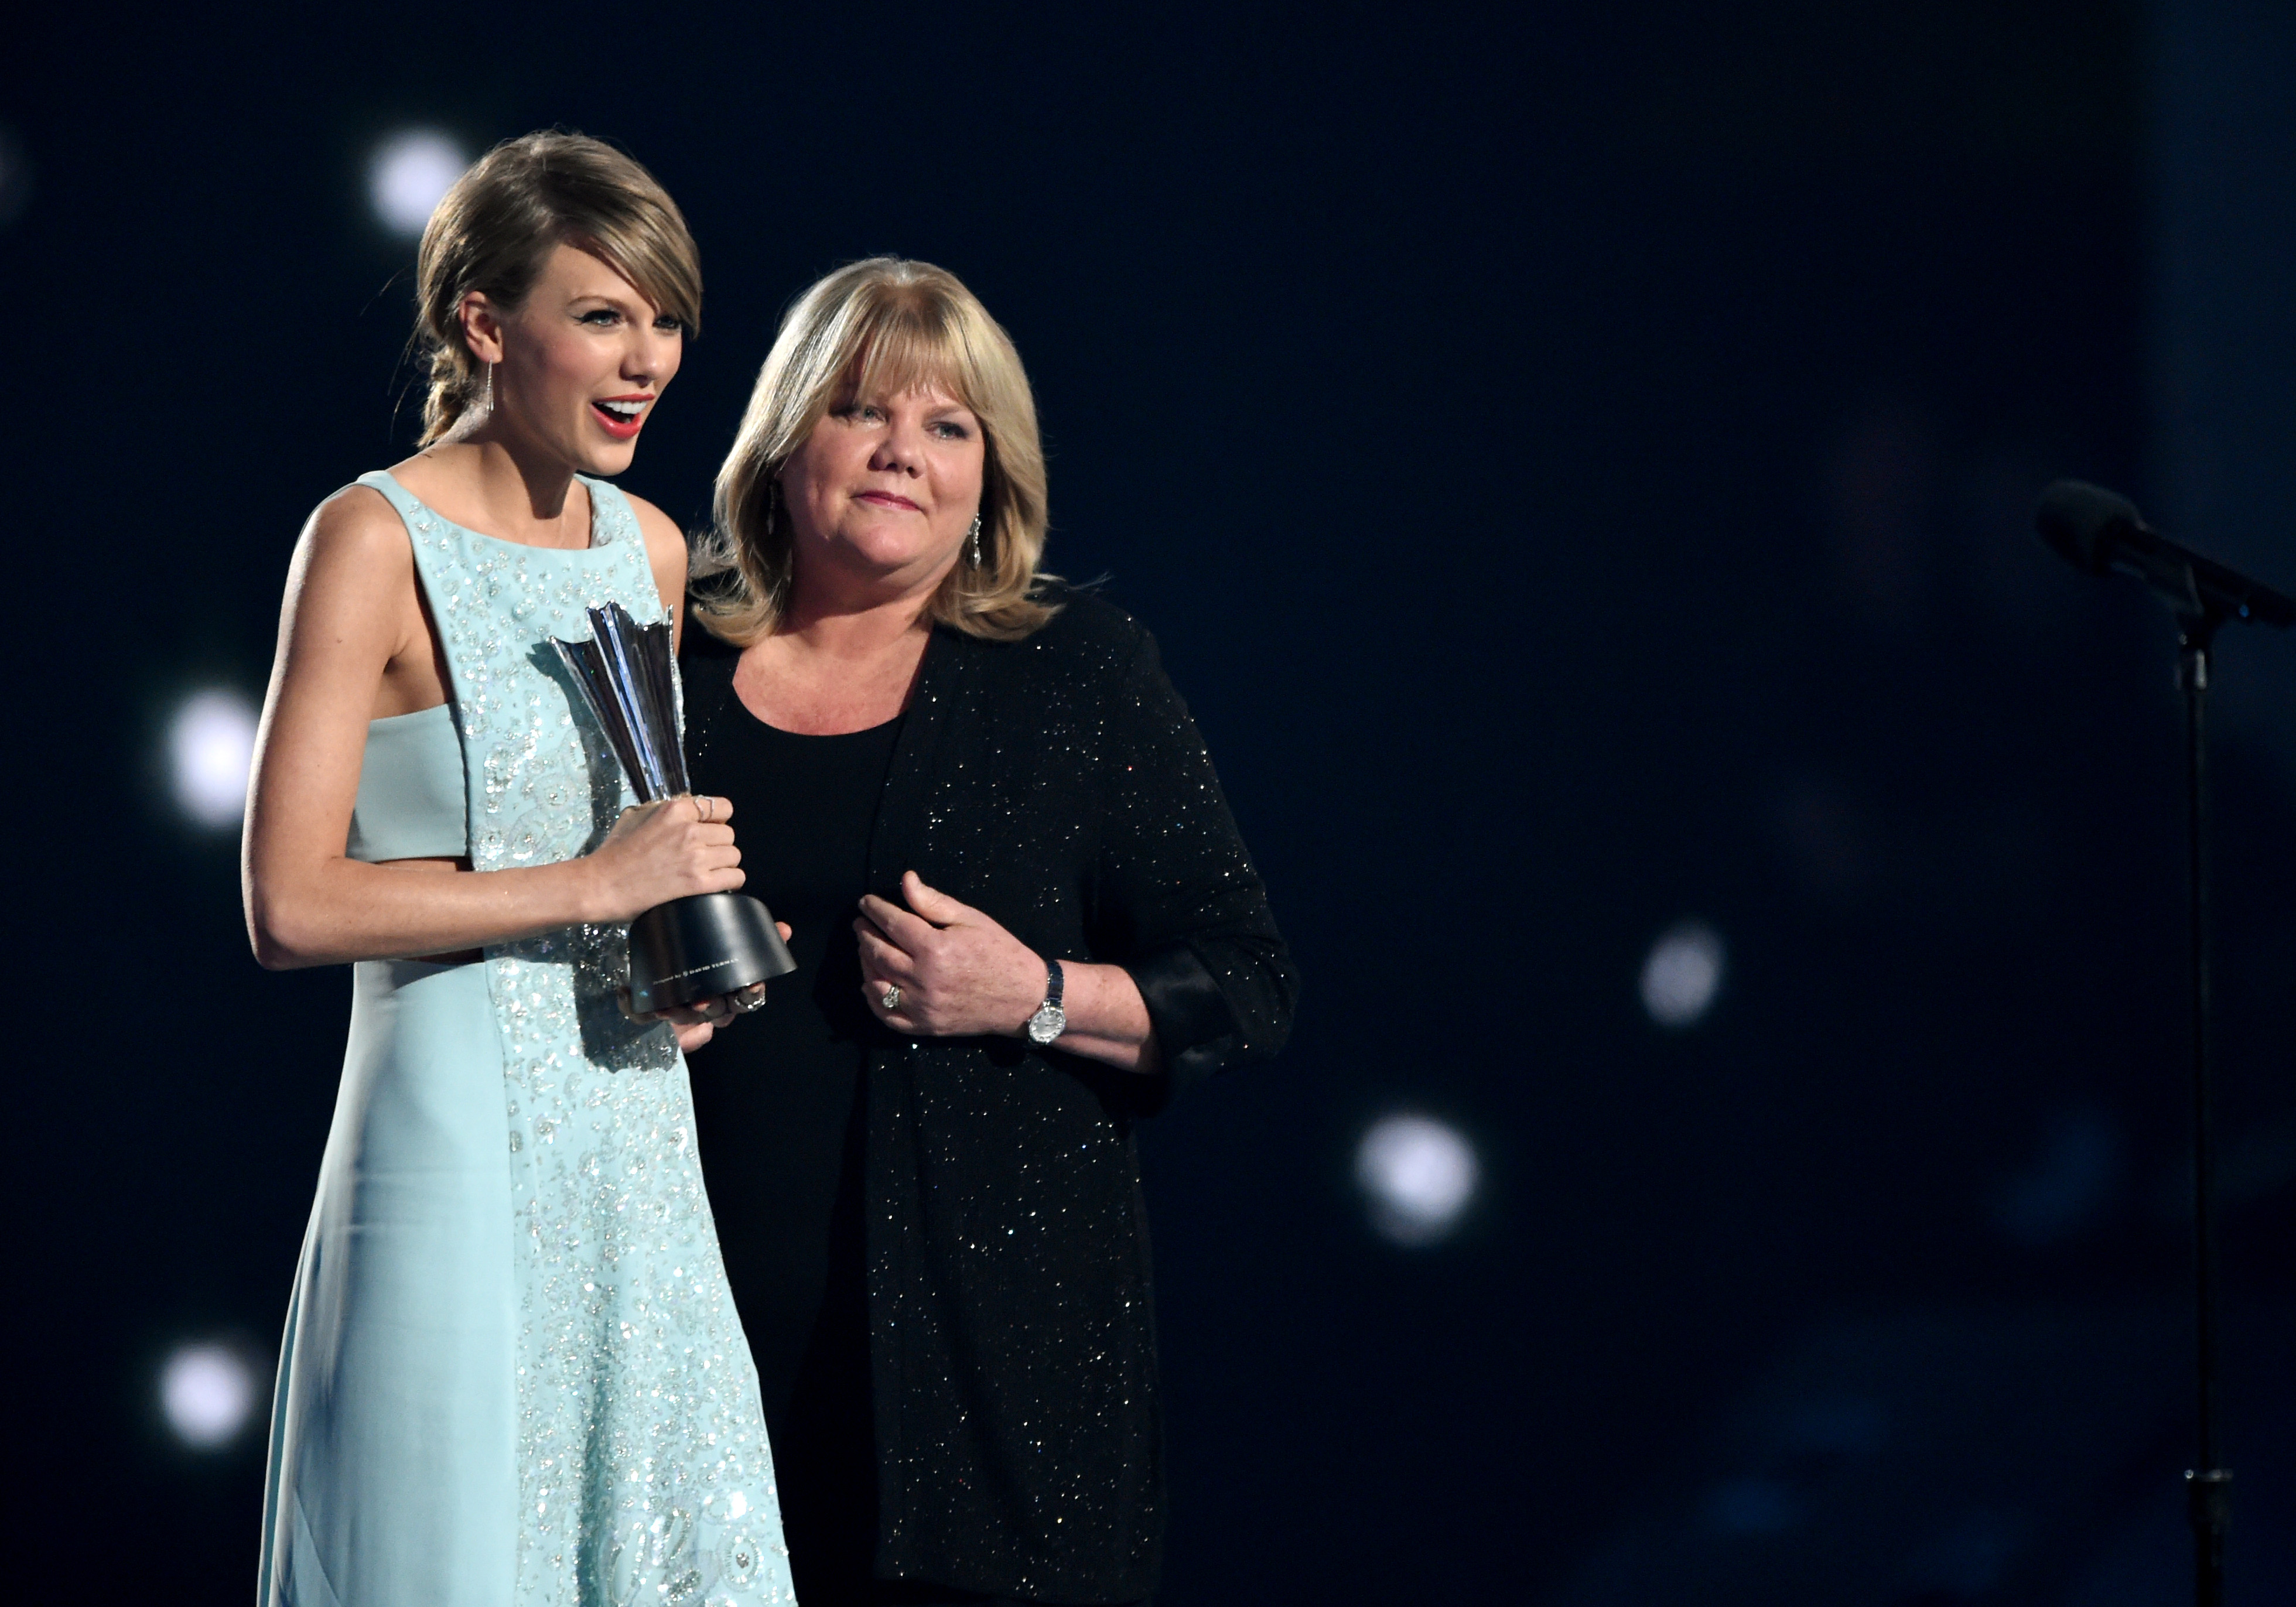 Honoree Taylor Swift accepts the Milestone Award from Andrea Swift onstage during the 50th Academy Of Country Music Awards at AT&T Stadium on April 19, 2015 in Arlington, Texas.